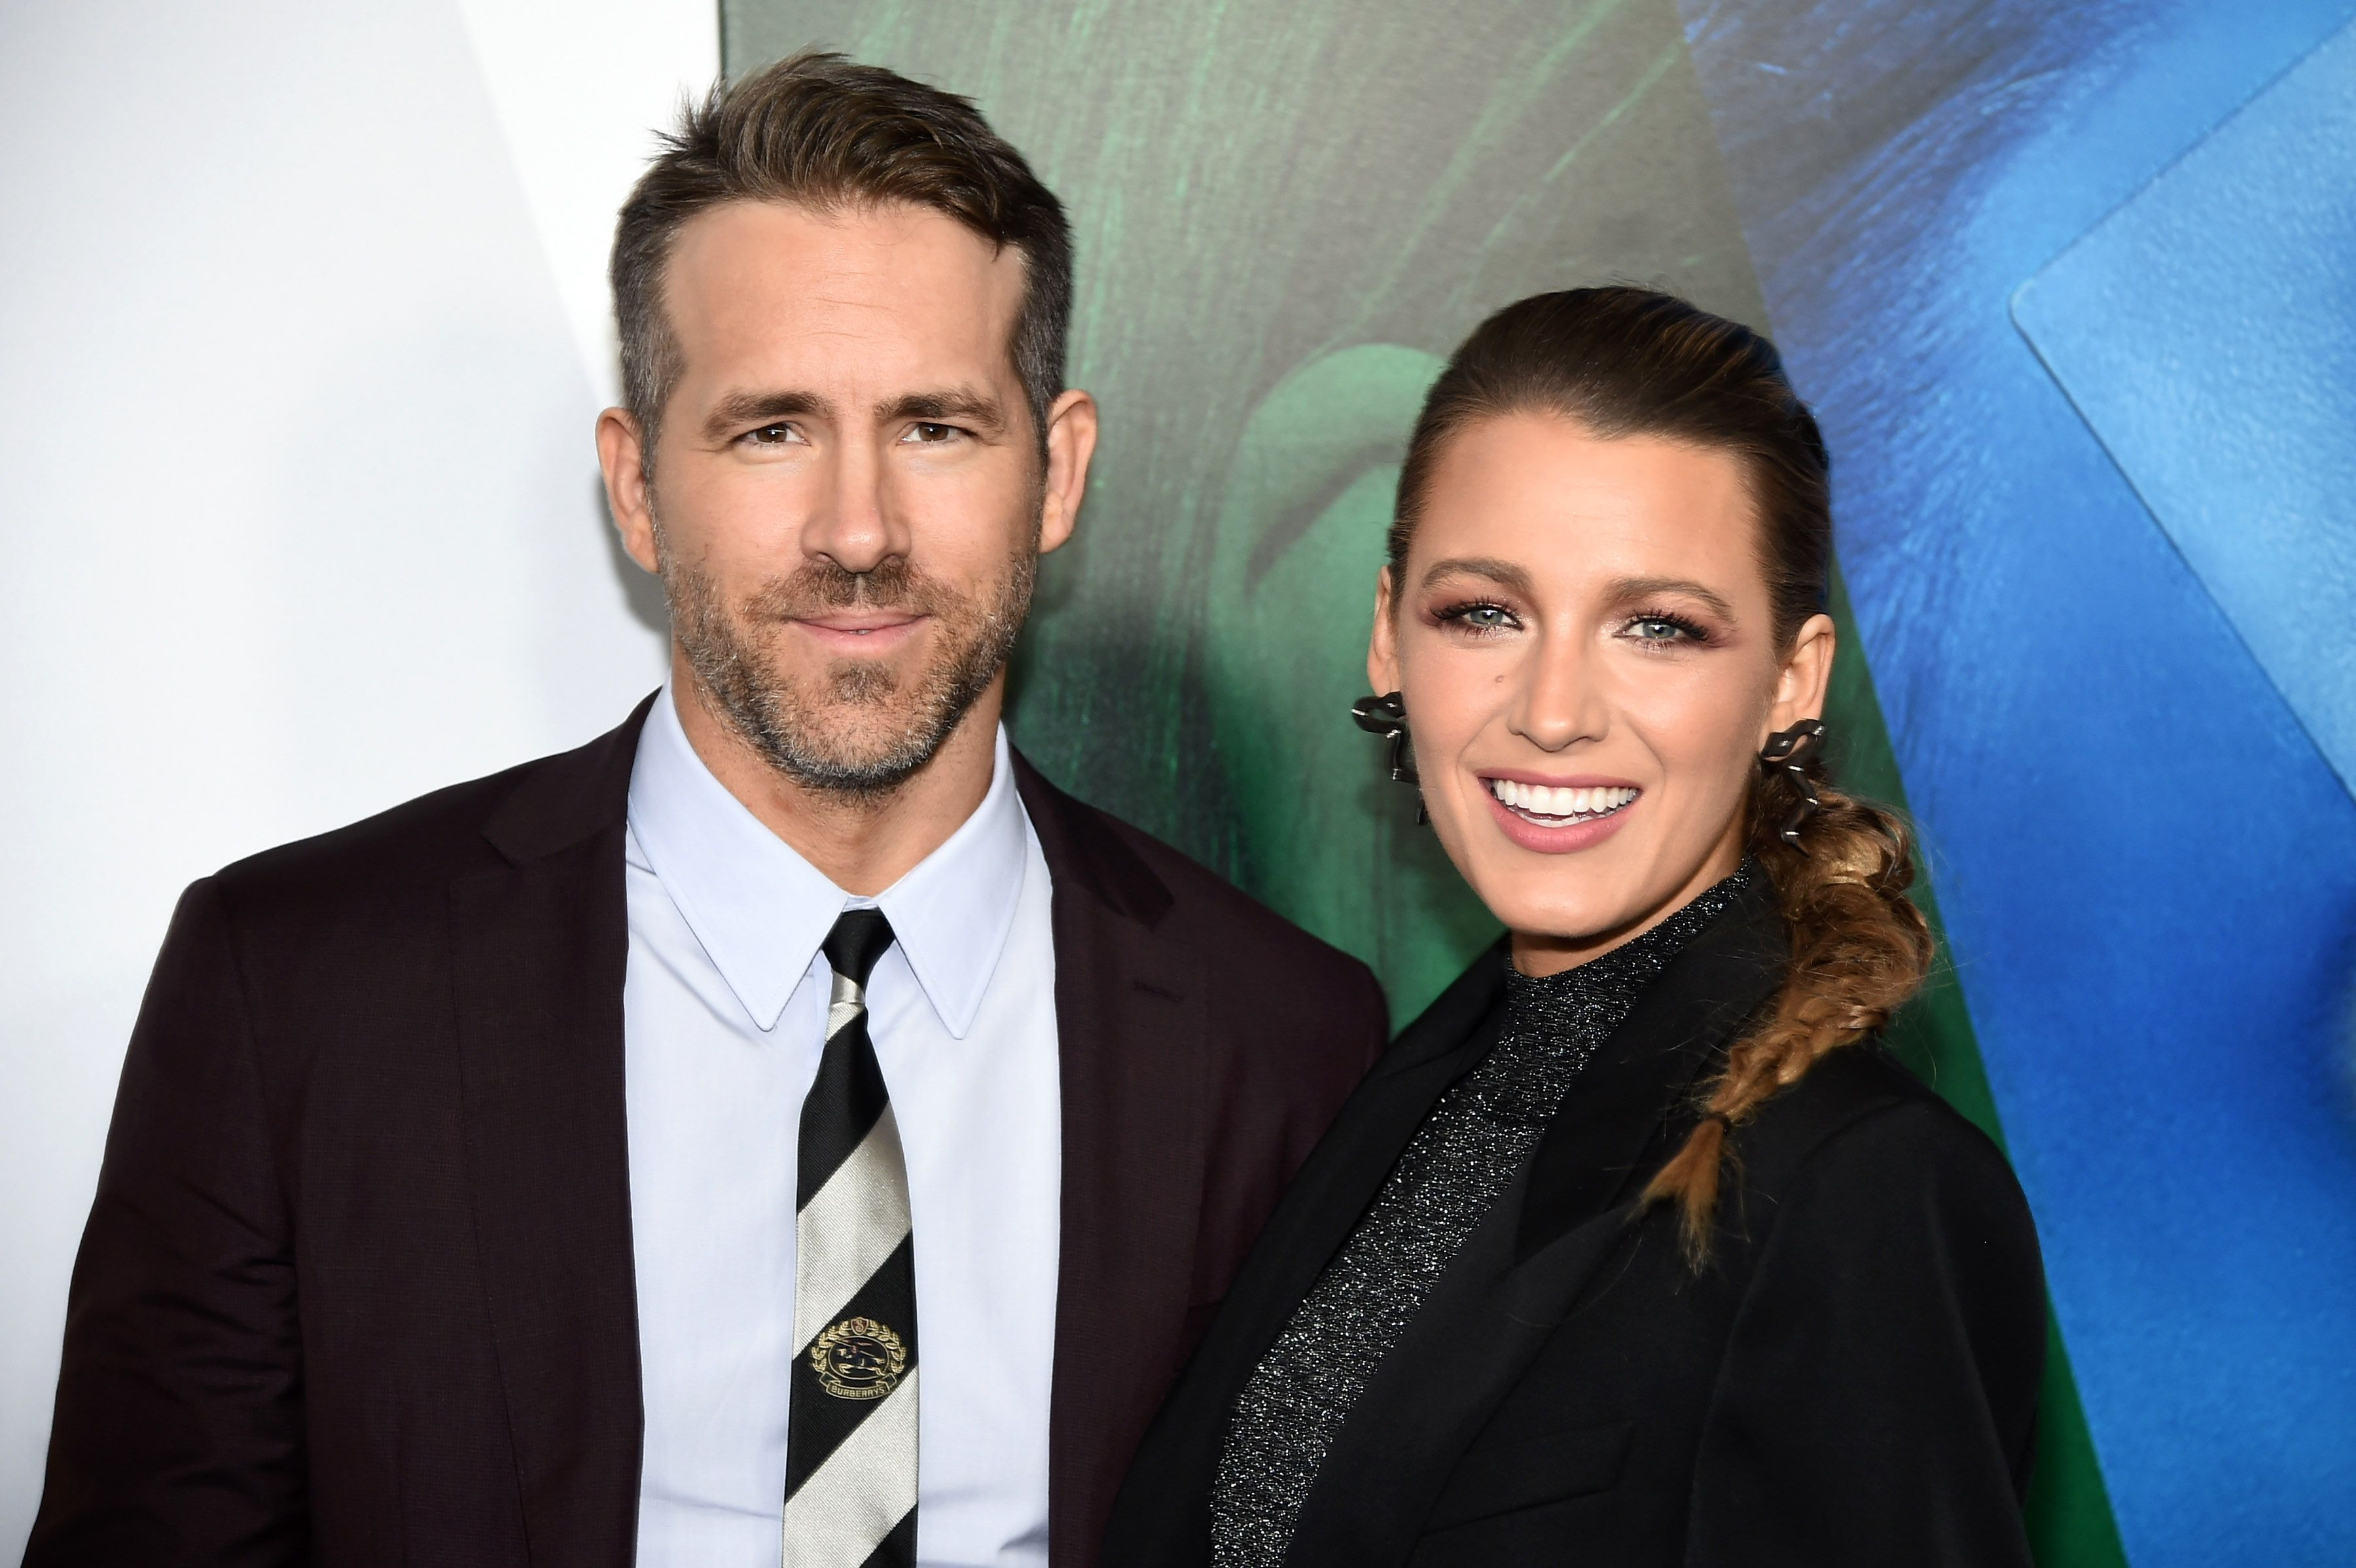 """A Simple Favor"" New York Premiere - Ryan Reynolds and Blake Lively"